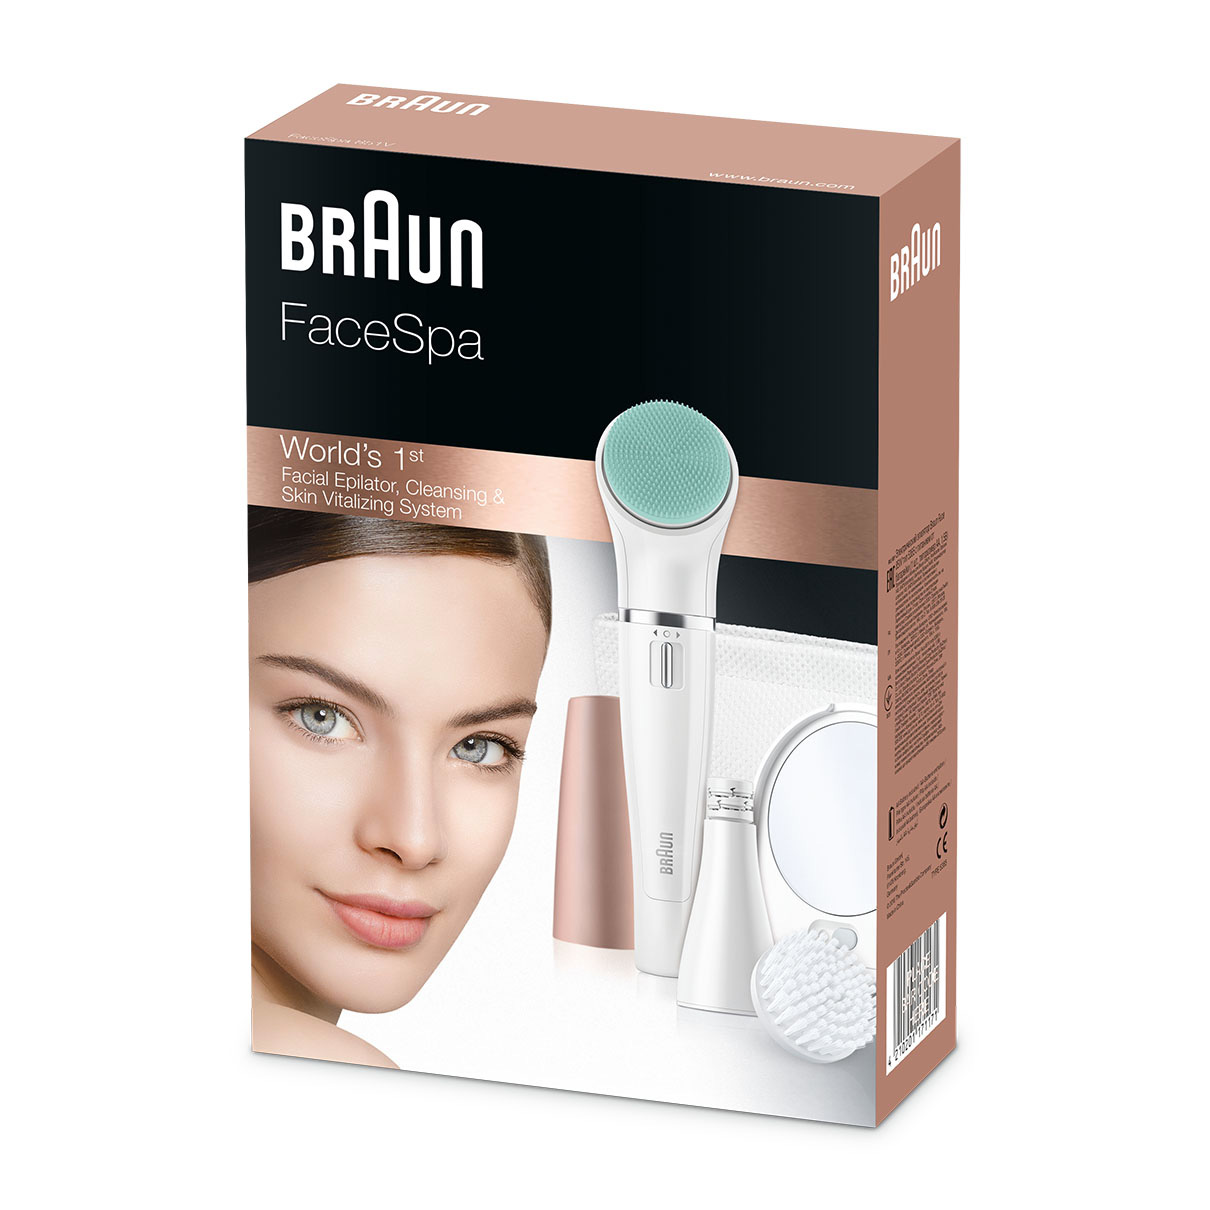 Braun FaceSpa 851V - Packaging